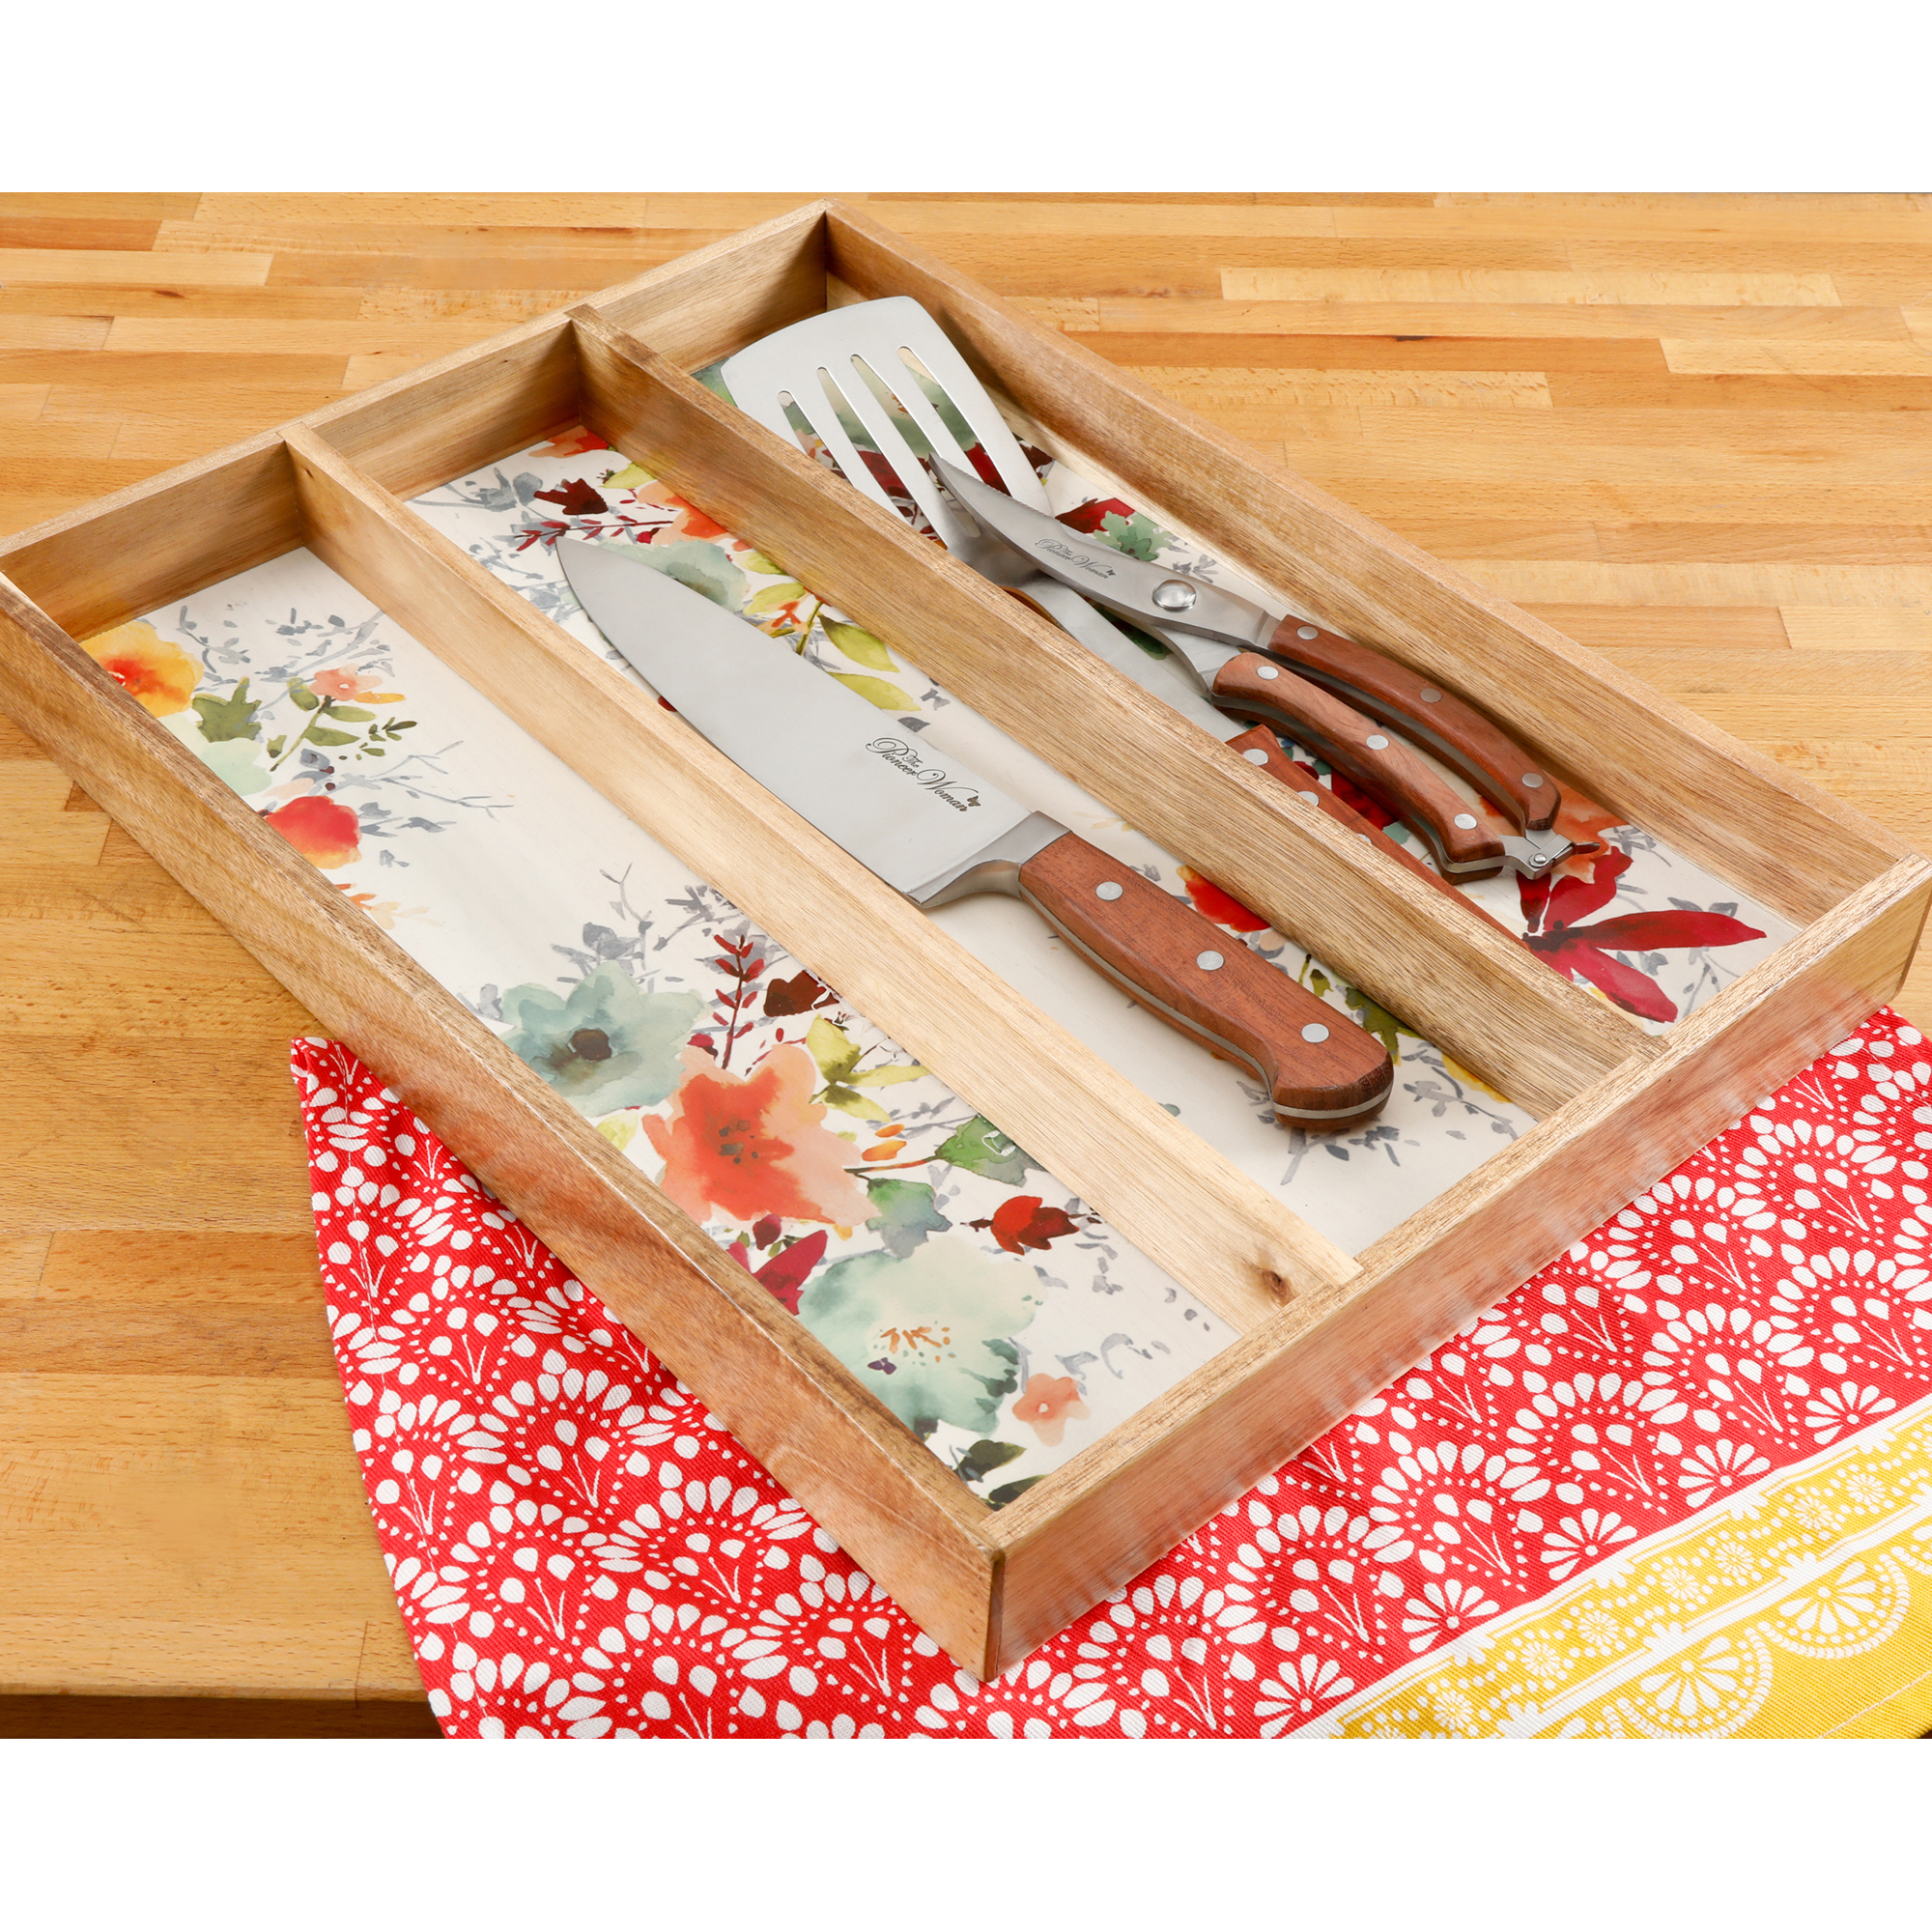 The Pioneer Woman Willow 13x18 Inch Gadget Organizer